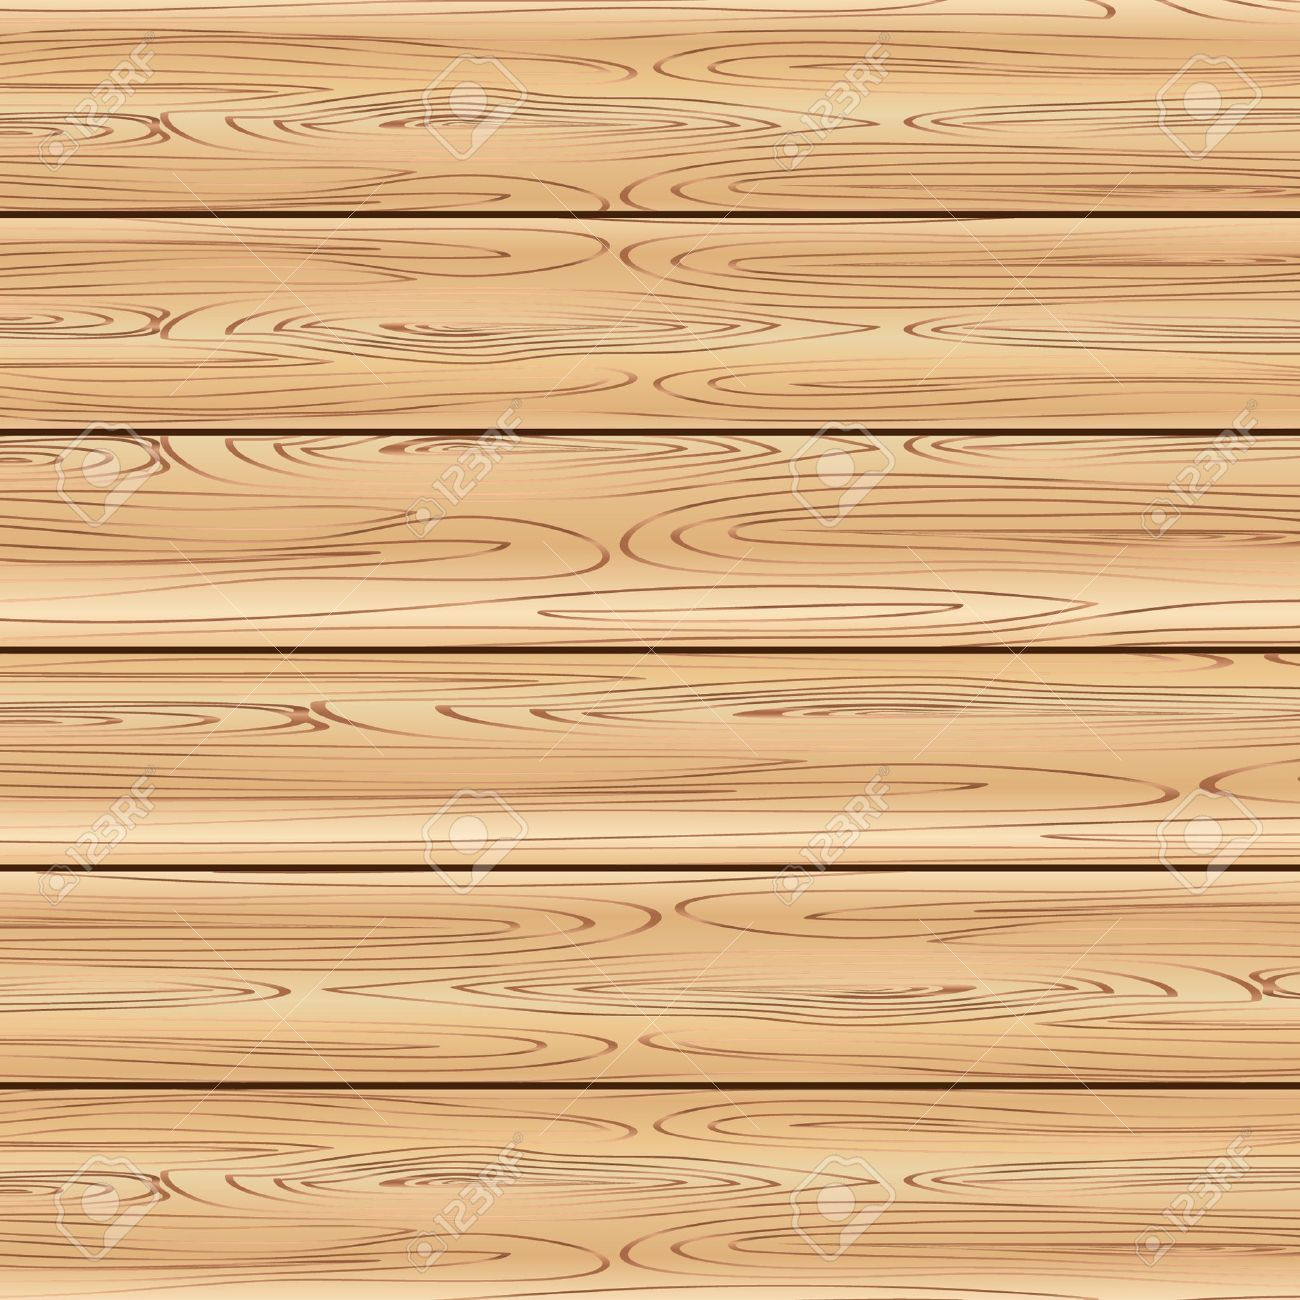 Brown wood panel background. Stock Vector - 18139828 - Brown Wood Panel Background. Royalty Free Cliparts, Vectors, And